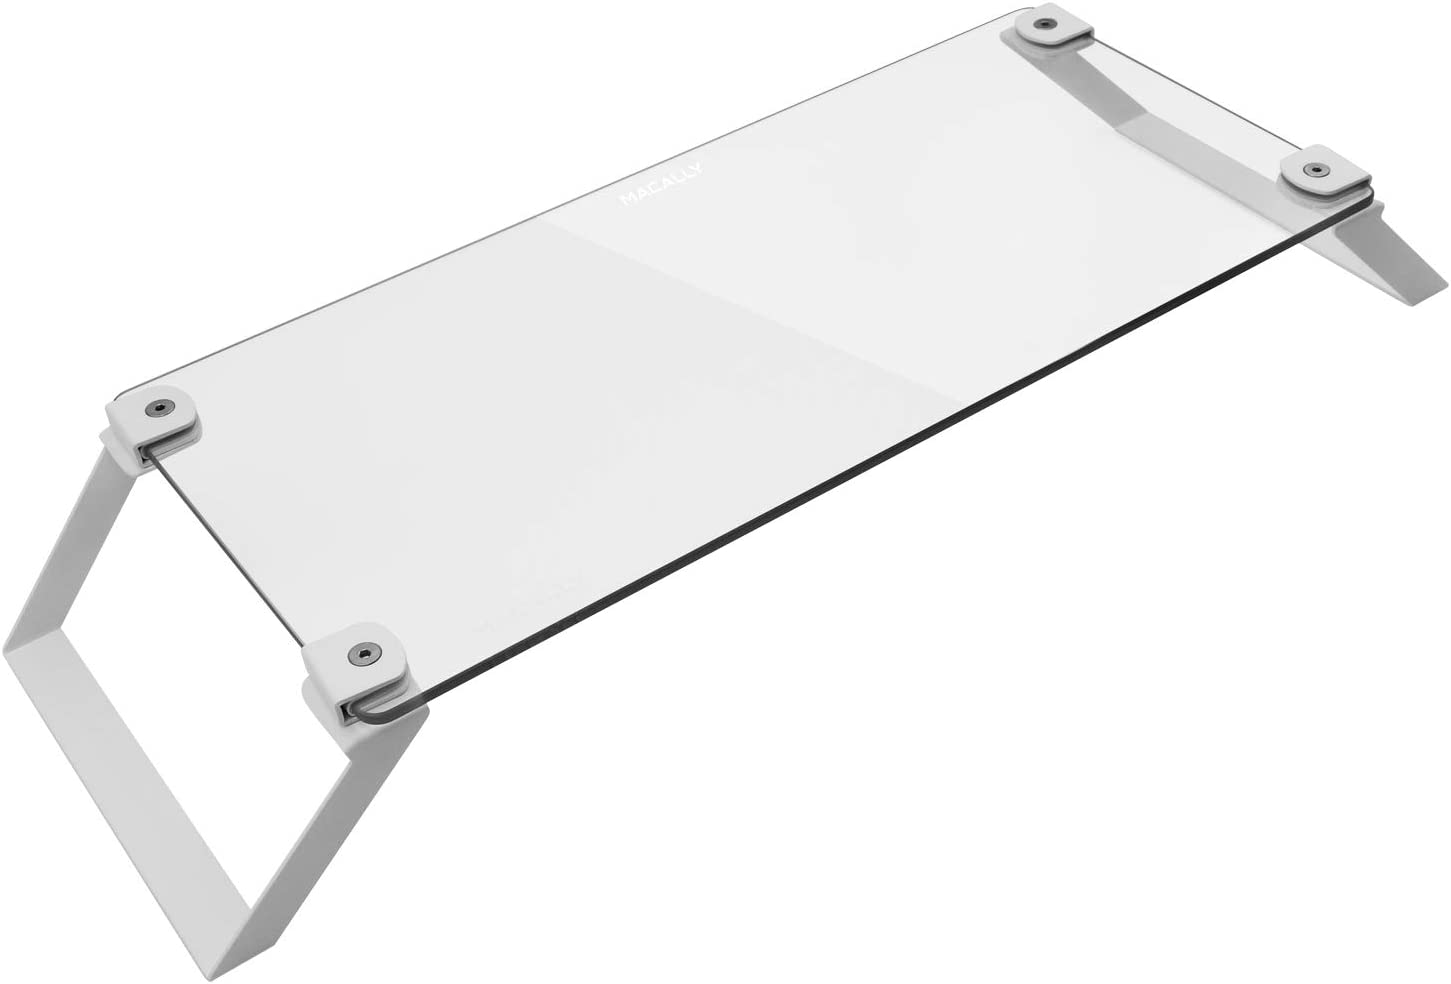 Macally Glass Computer Monitor Stand Riser - Desk Monitor Riser for Laptop with Shelf Storage Space for Keyboard - Sturdy Desktop Computer Stand & No Slip Pads - White